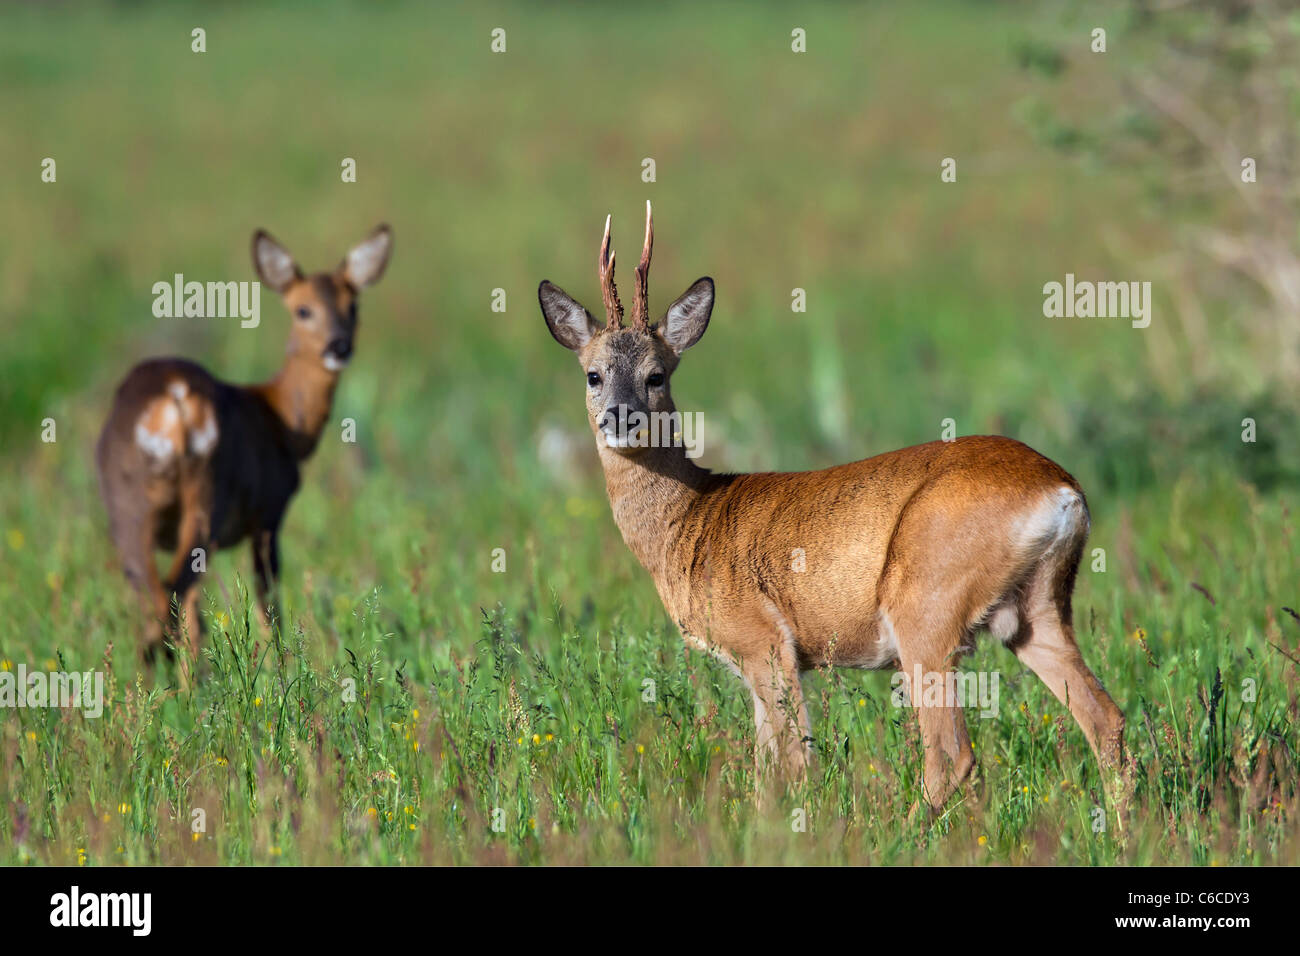 Roe deer (Capreolus capreolus) roebuck with female in field, Germany - Stock Image